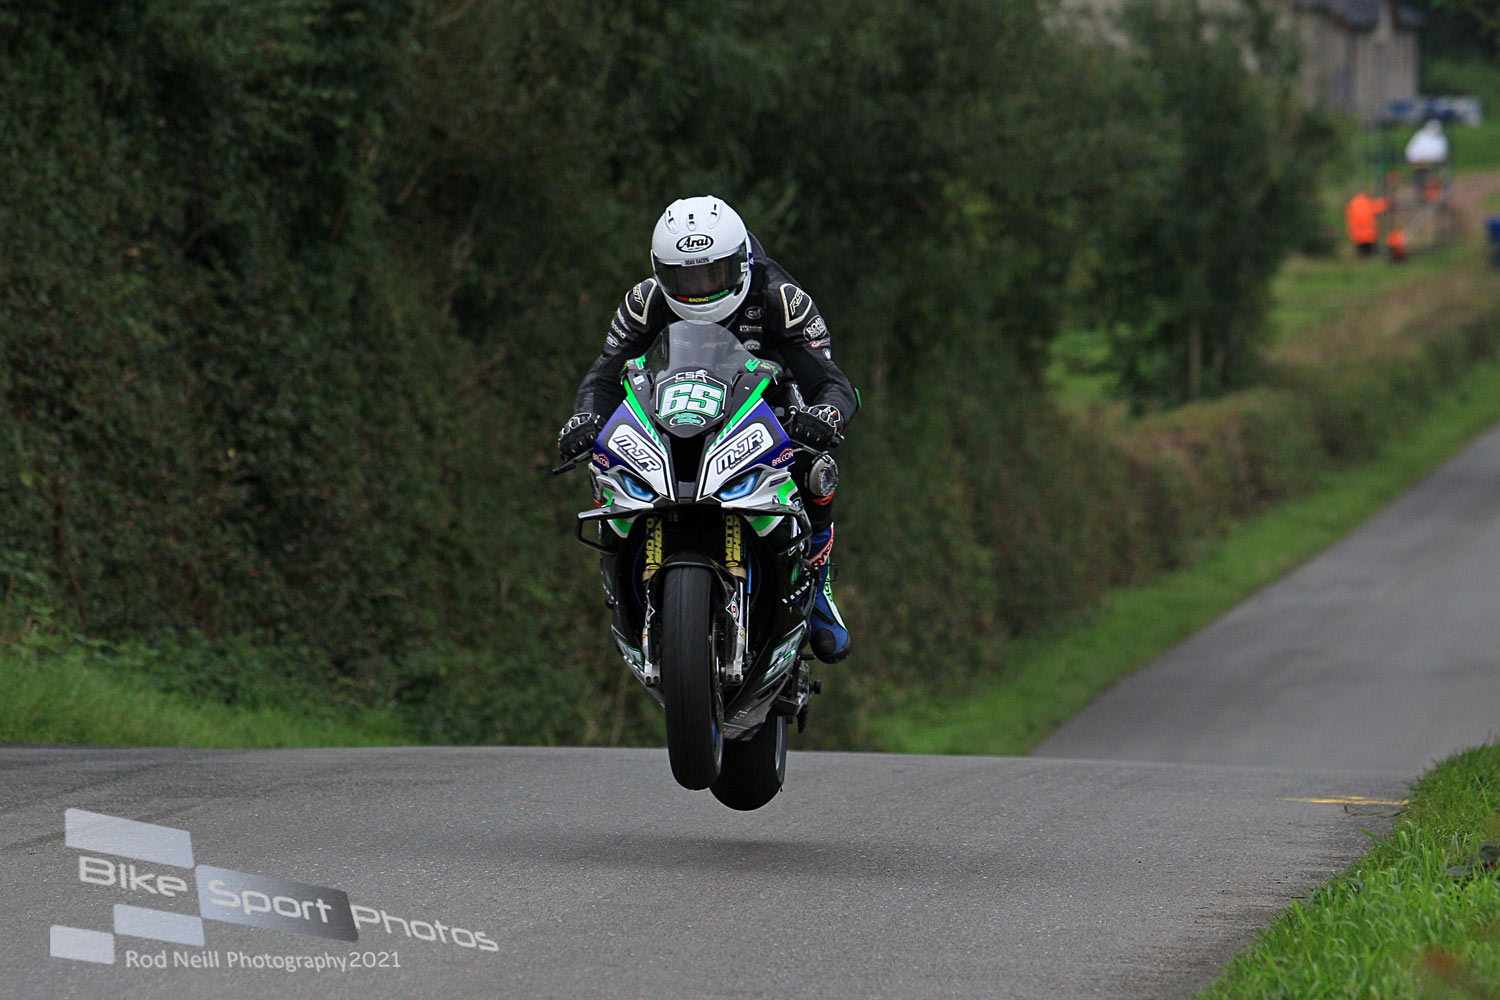 KDM Hire Cookstown 100: Sweeney Bags 1000cc Qualifying Victory